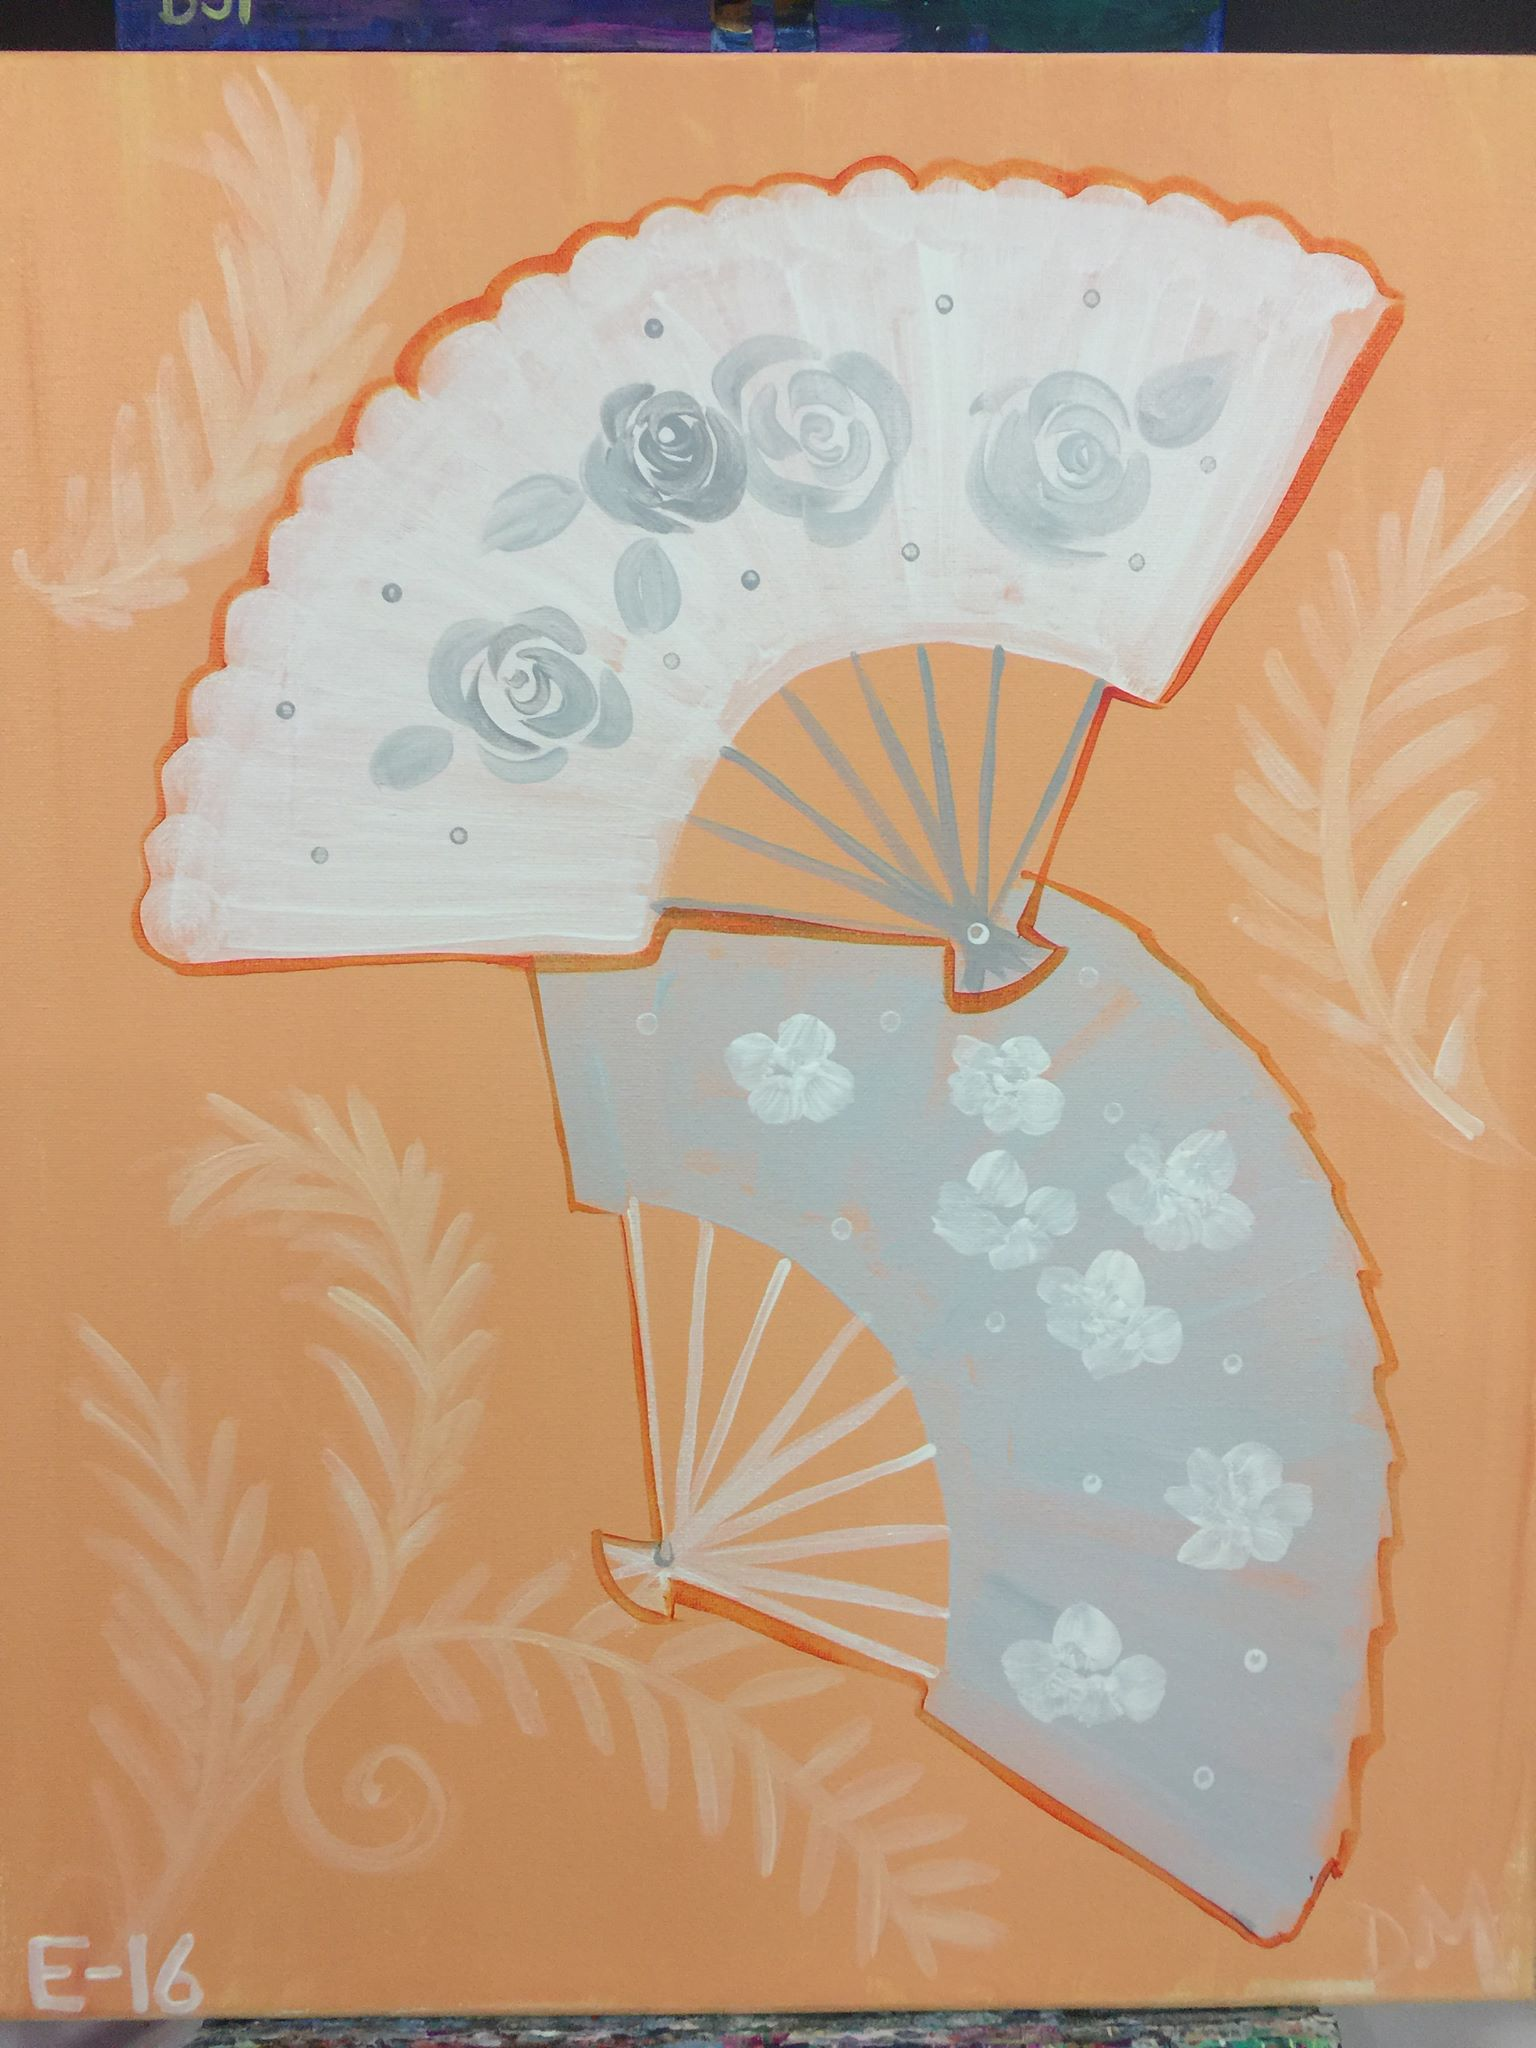 E-16 Hand Fans peach and Grey